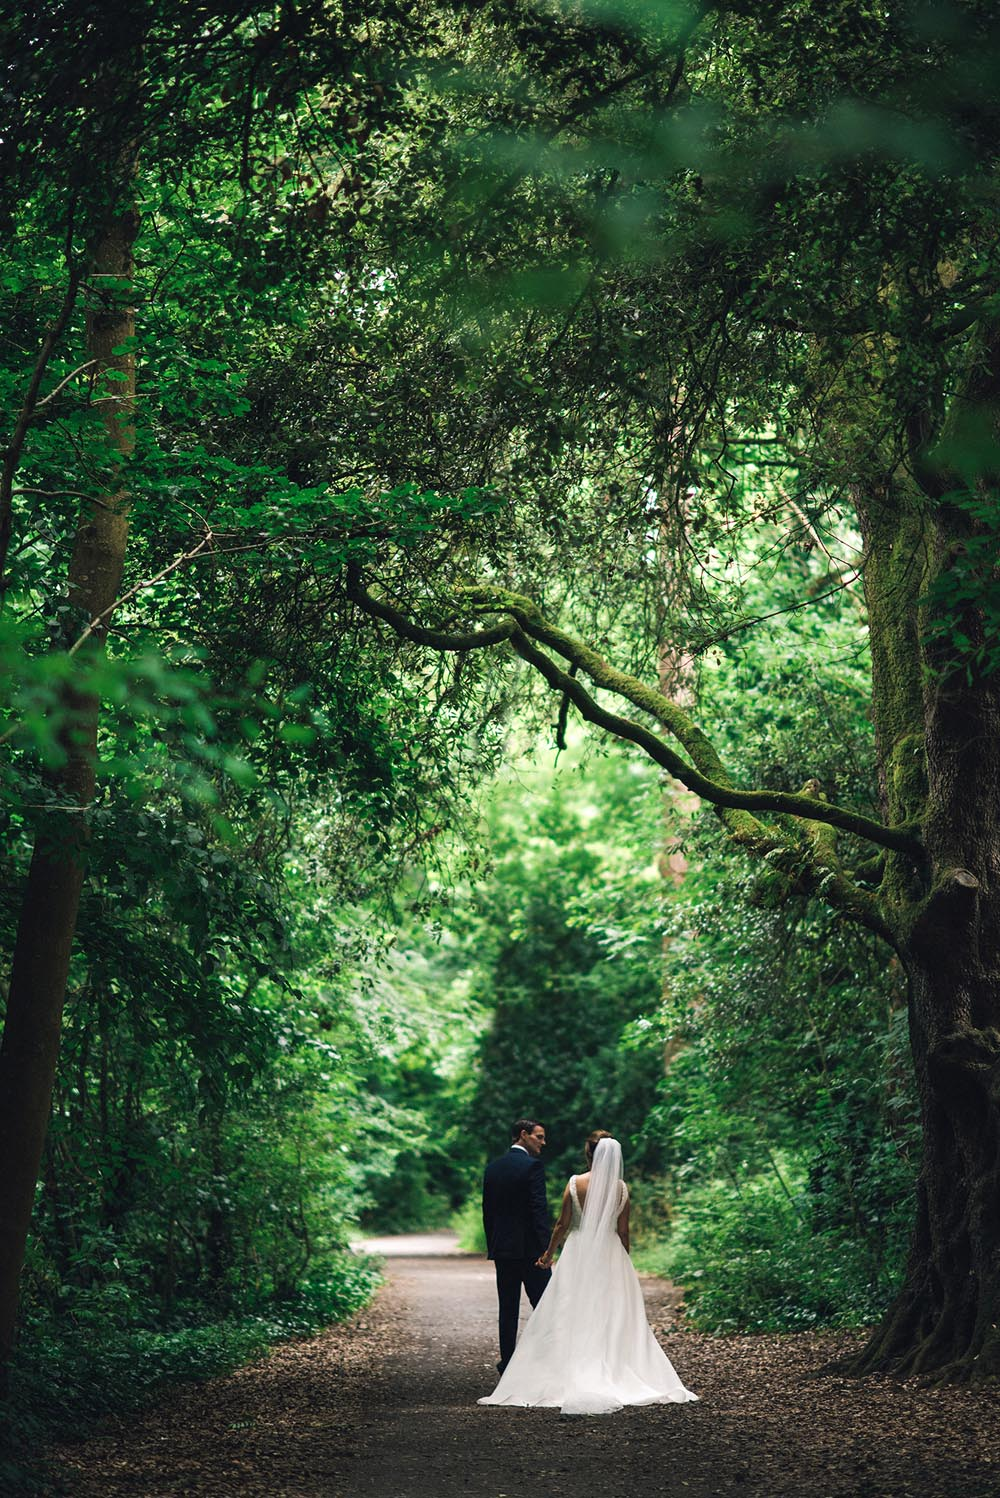 married couple walking in the grounds of Kilkenny Castle on their wedding day